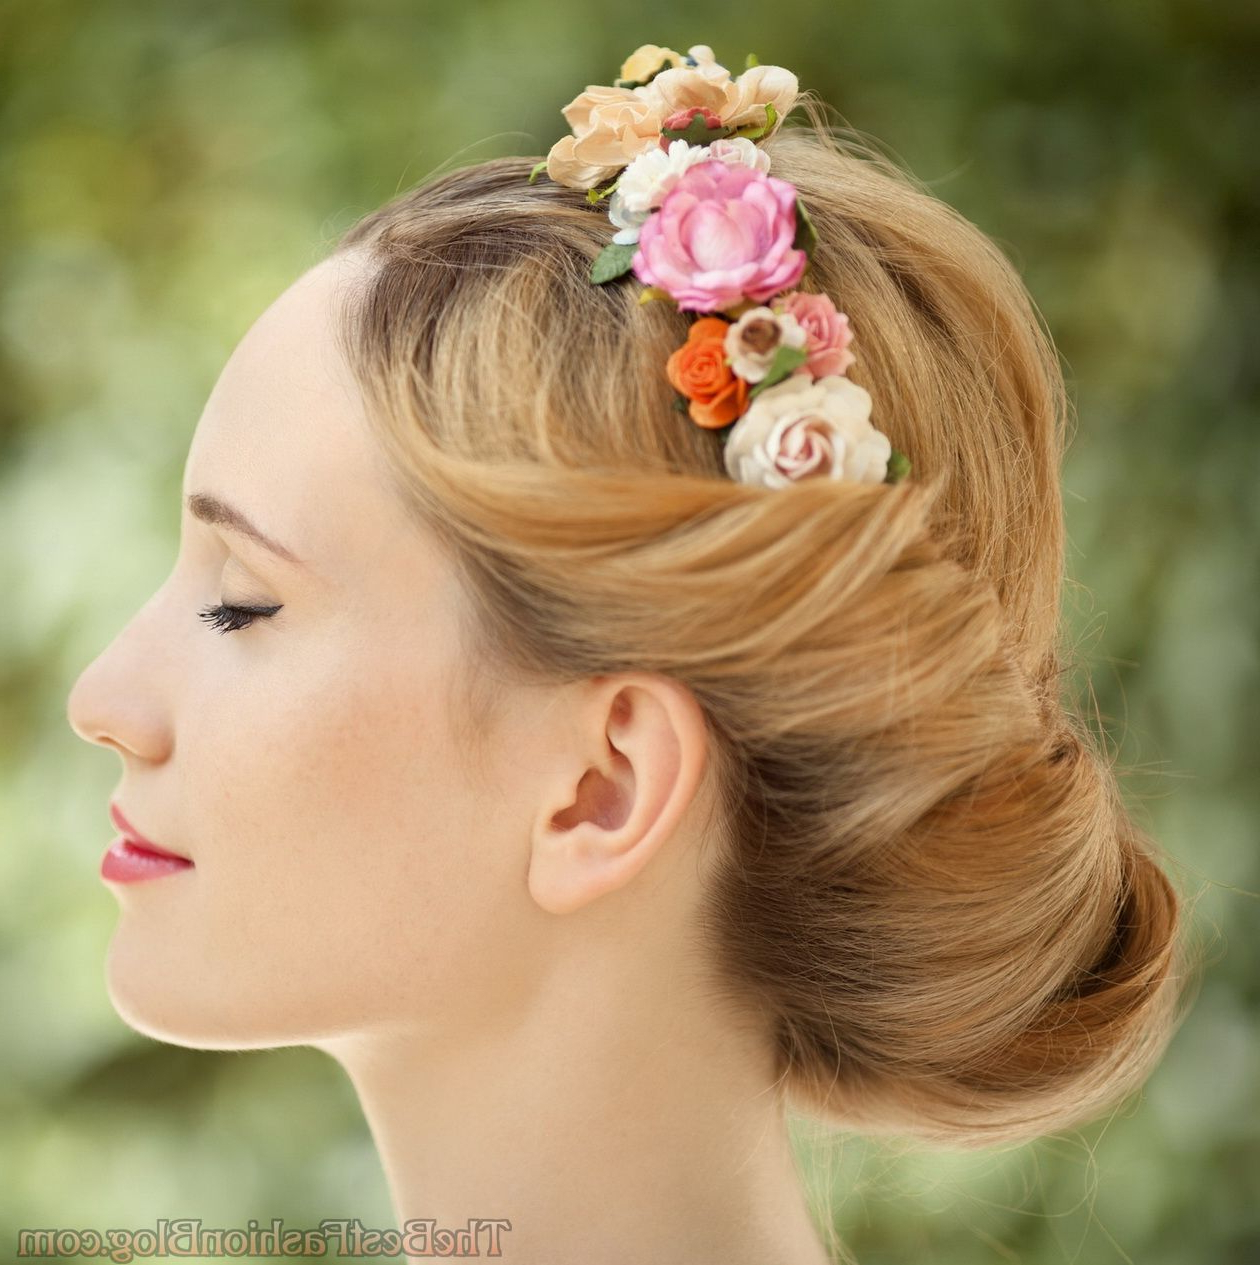 Hippie & Boho Hairstyles For Women 2018 For Bohemian Short Hairstyles (View 15 of 25)